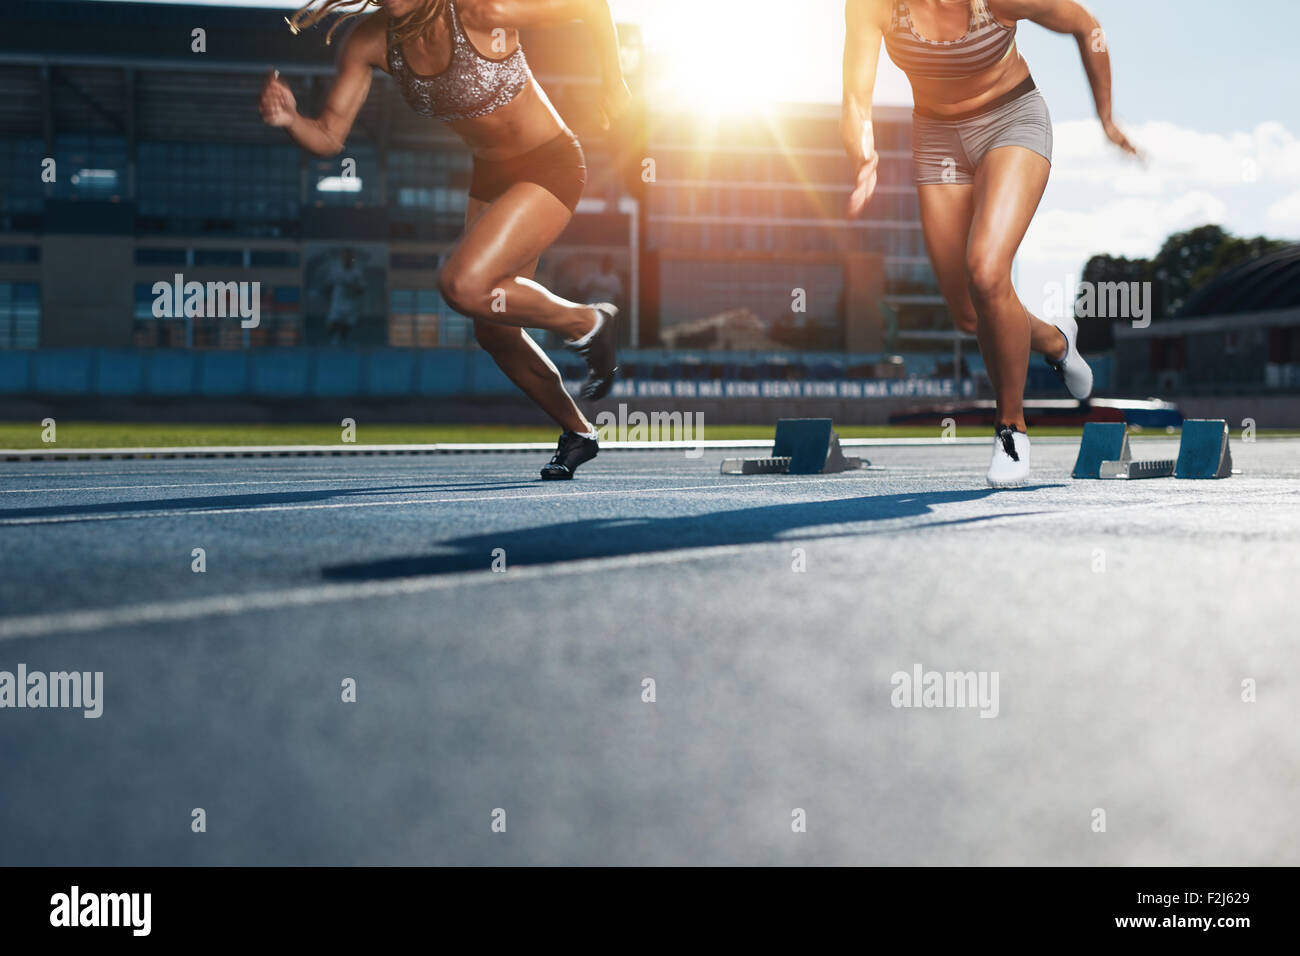 Sprinters starts out of the blocks on athletics racetrack with bright sunlight. Low section shot of female athletes - Stock Image